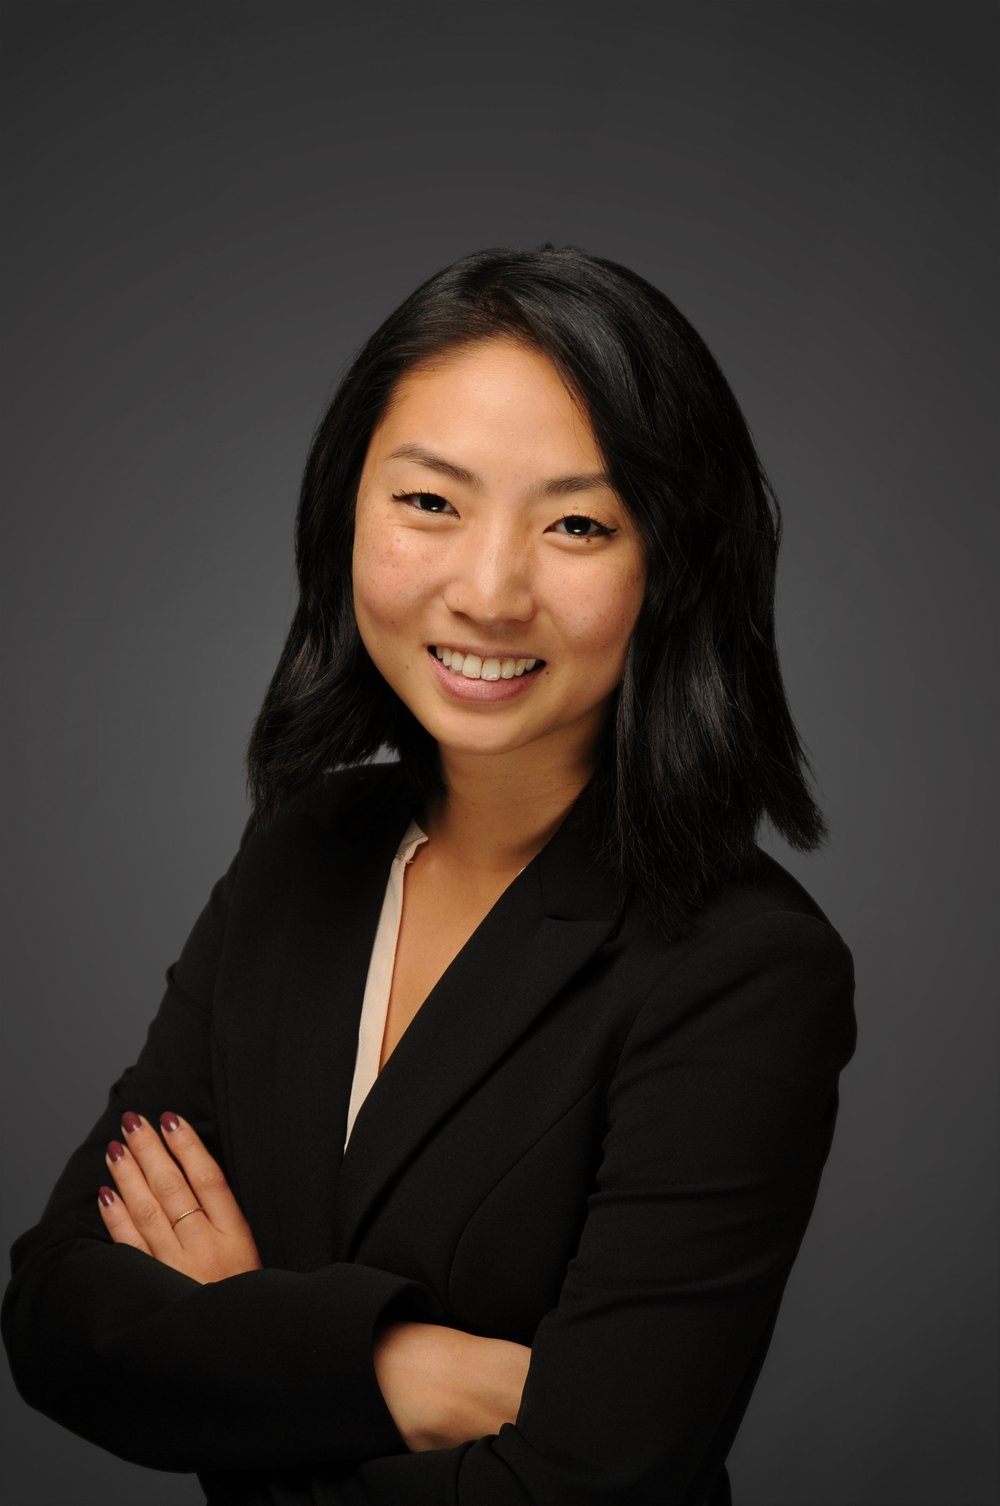 LinkedIn Photo - Leslie Chao.jpg